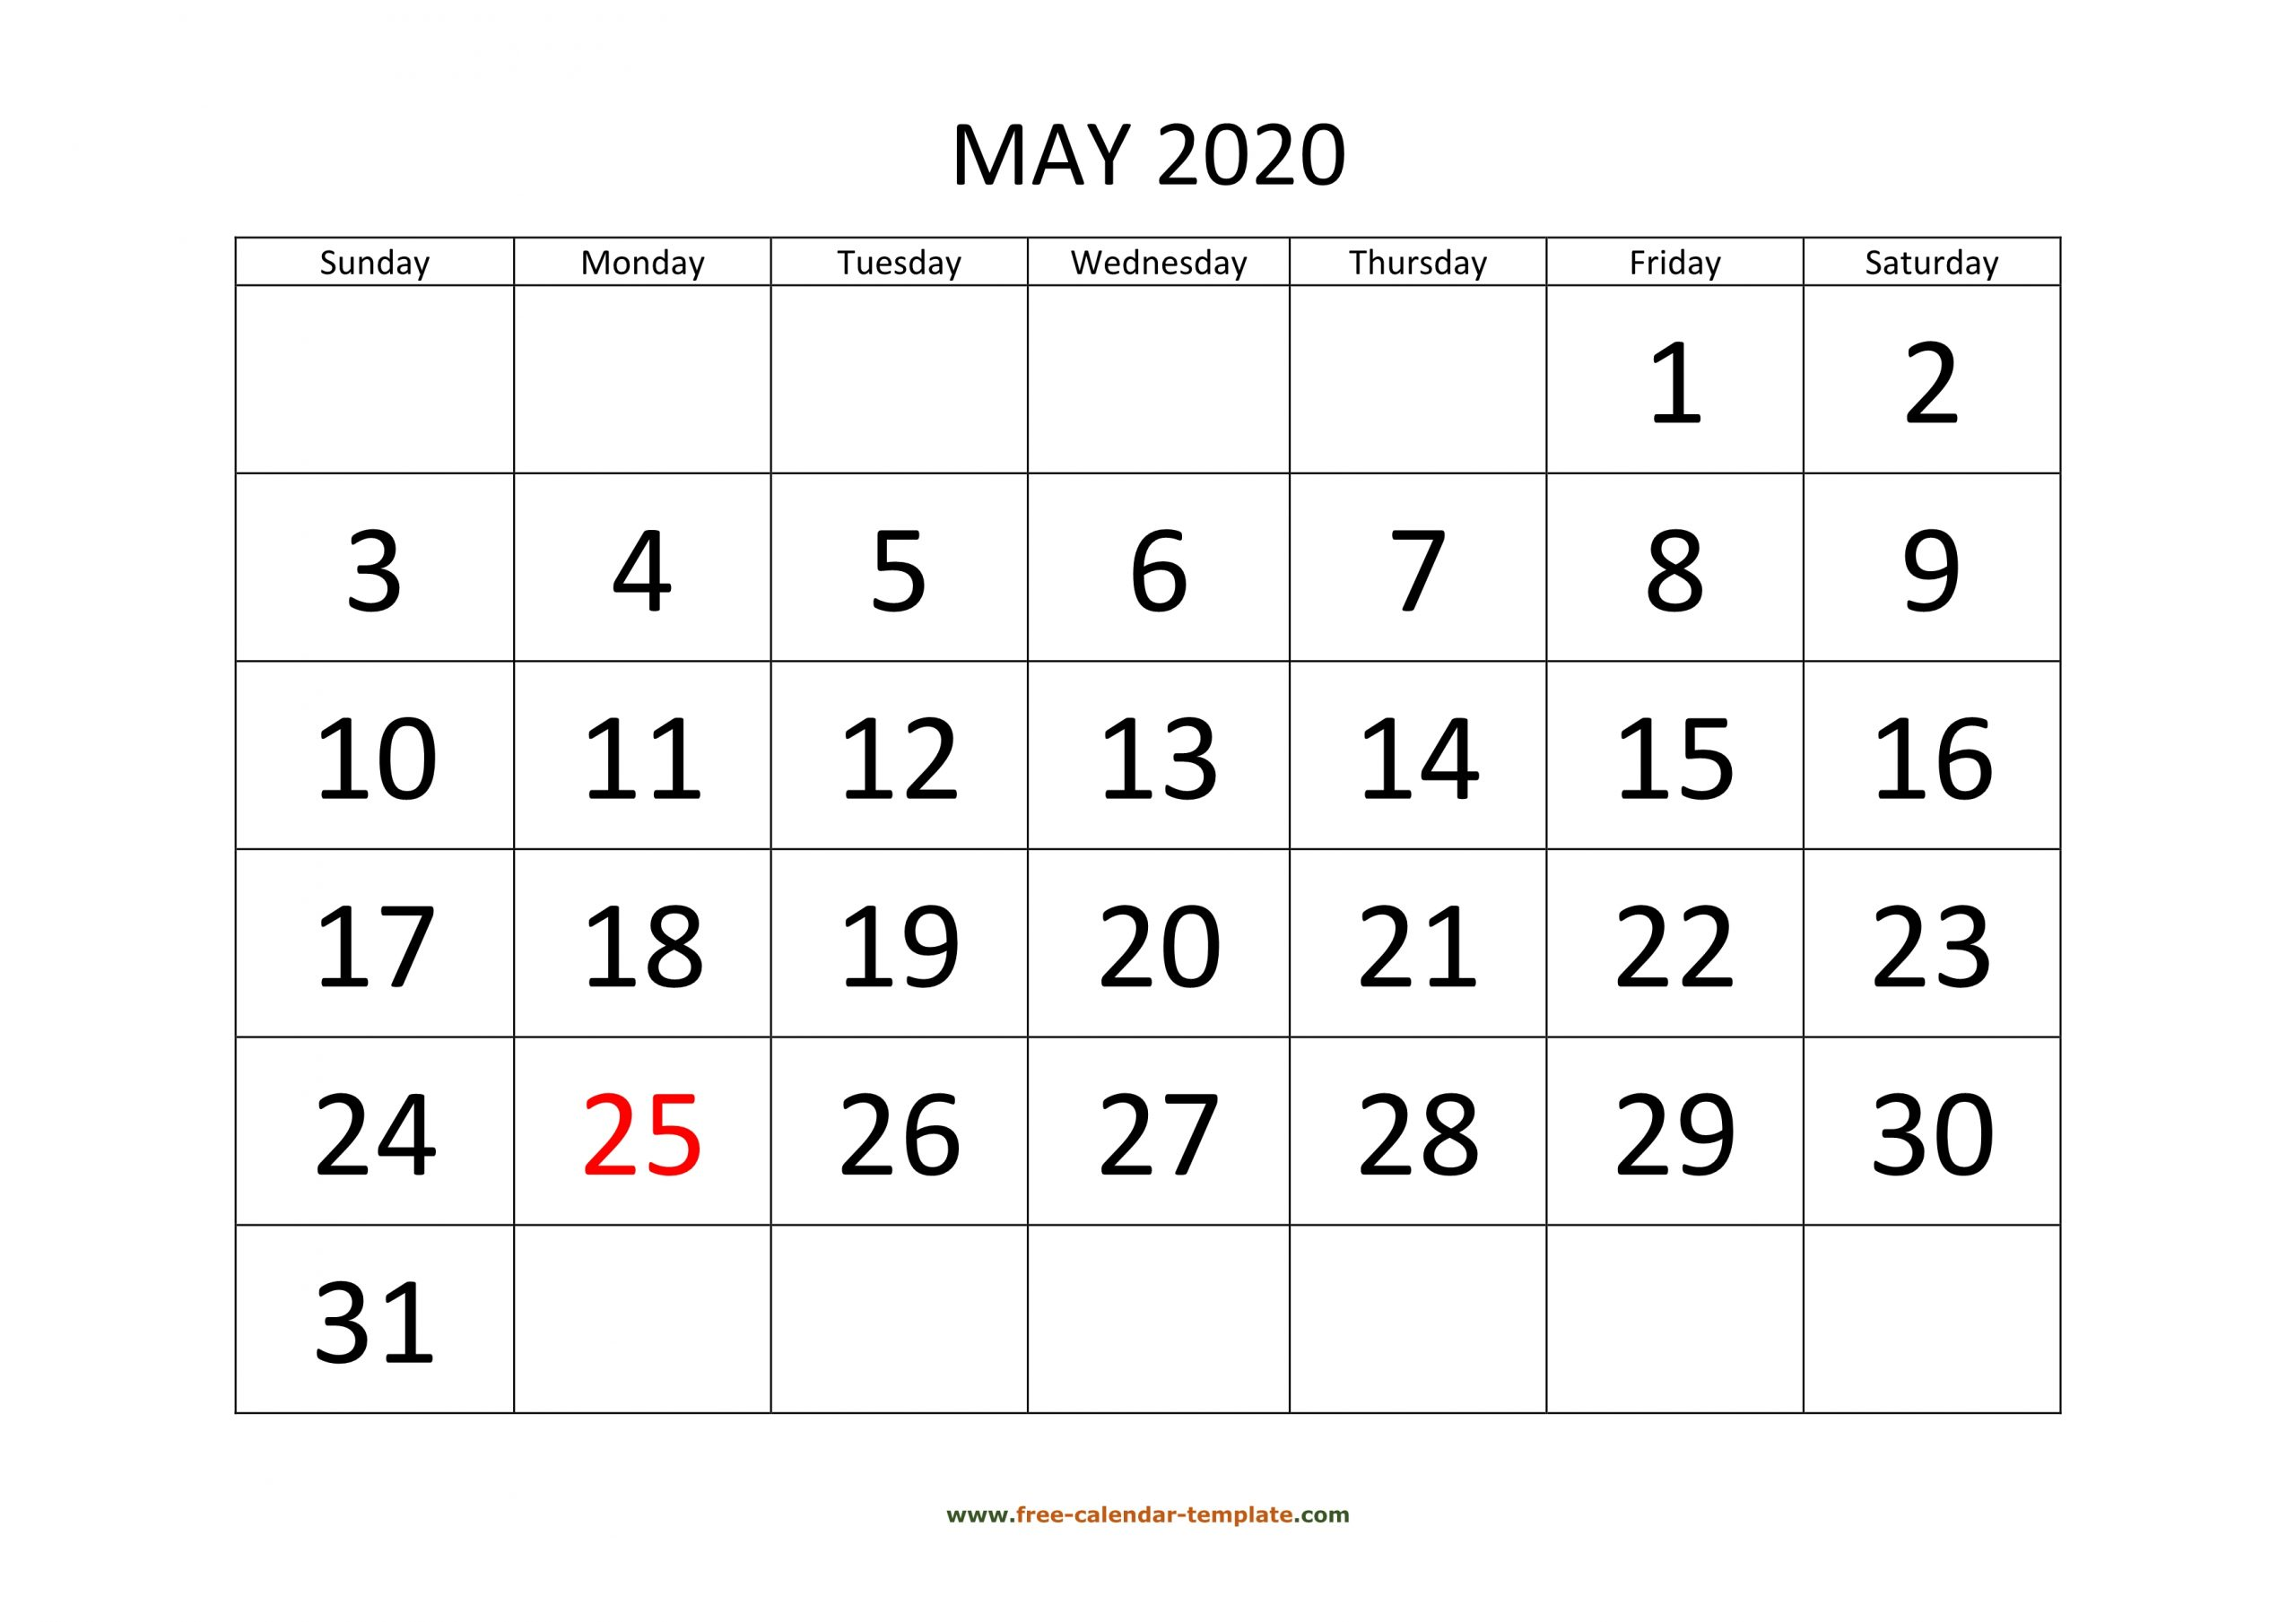 May 2020 Calendar Designed With Large Font (Horizontal